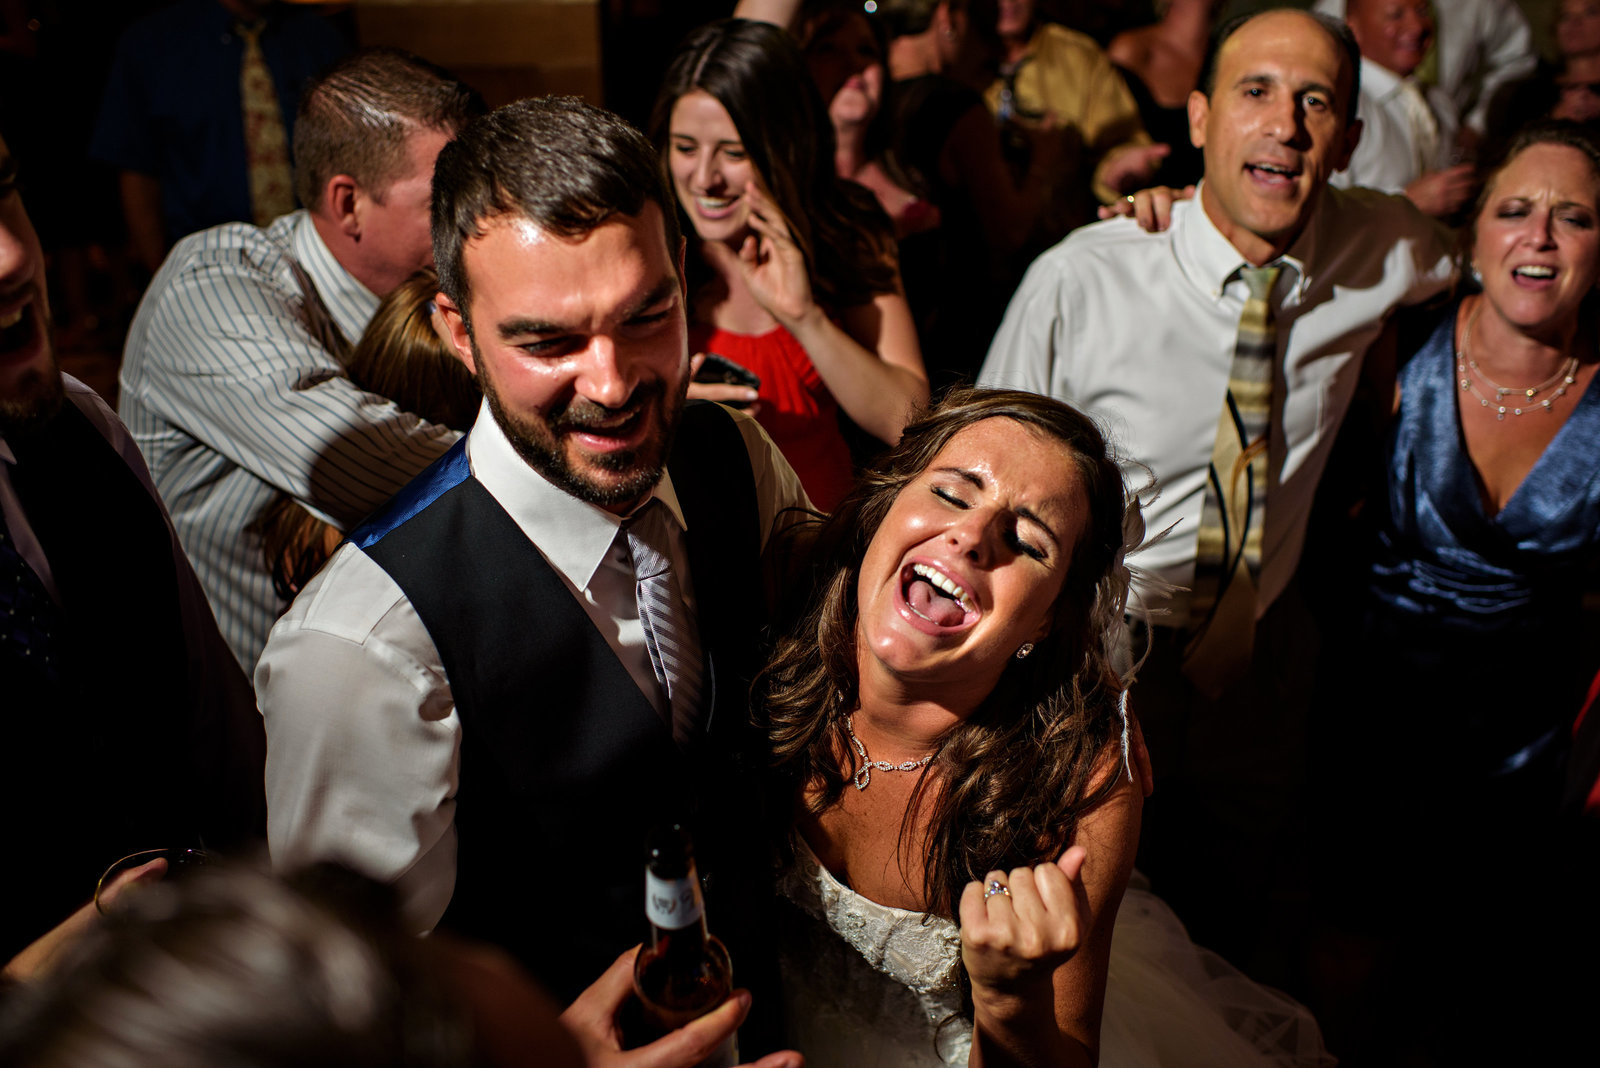 A bride and groom singing their hearts out to the last song at their reception at the Union Trust in Philadelphia.